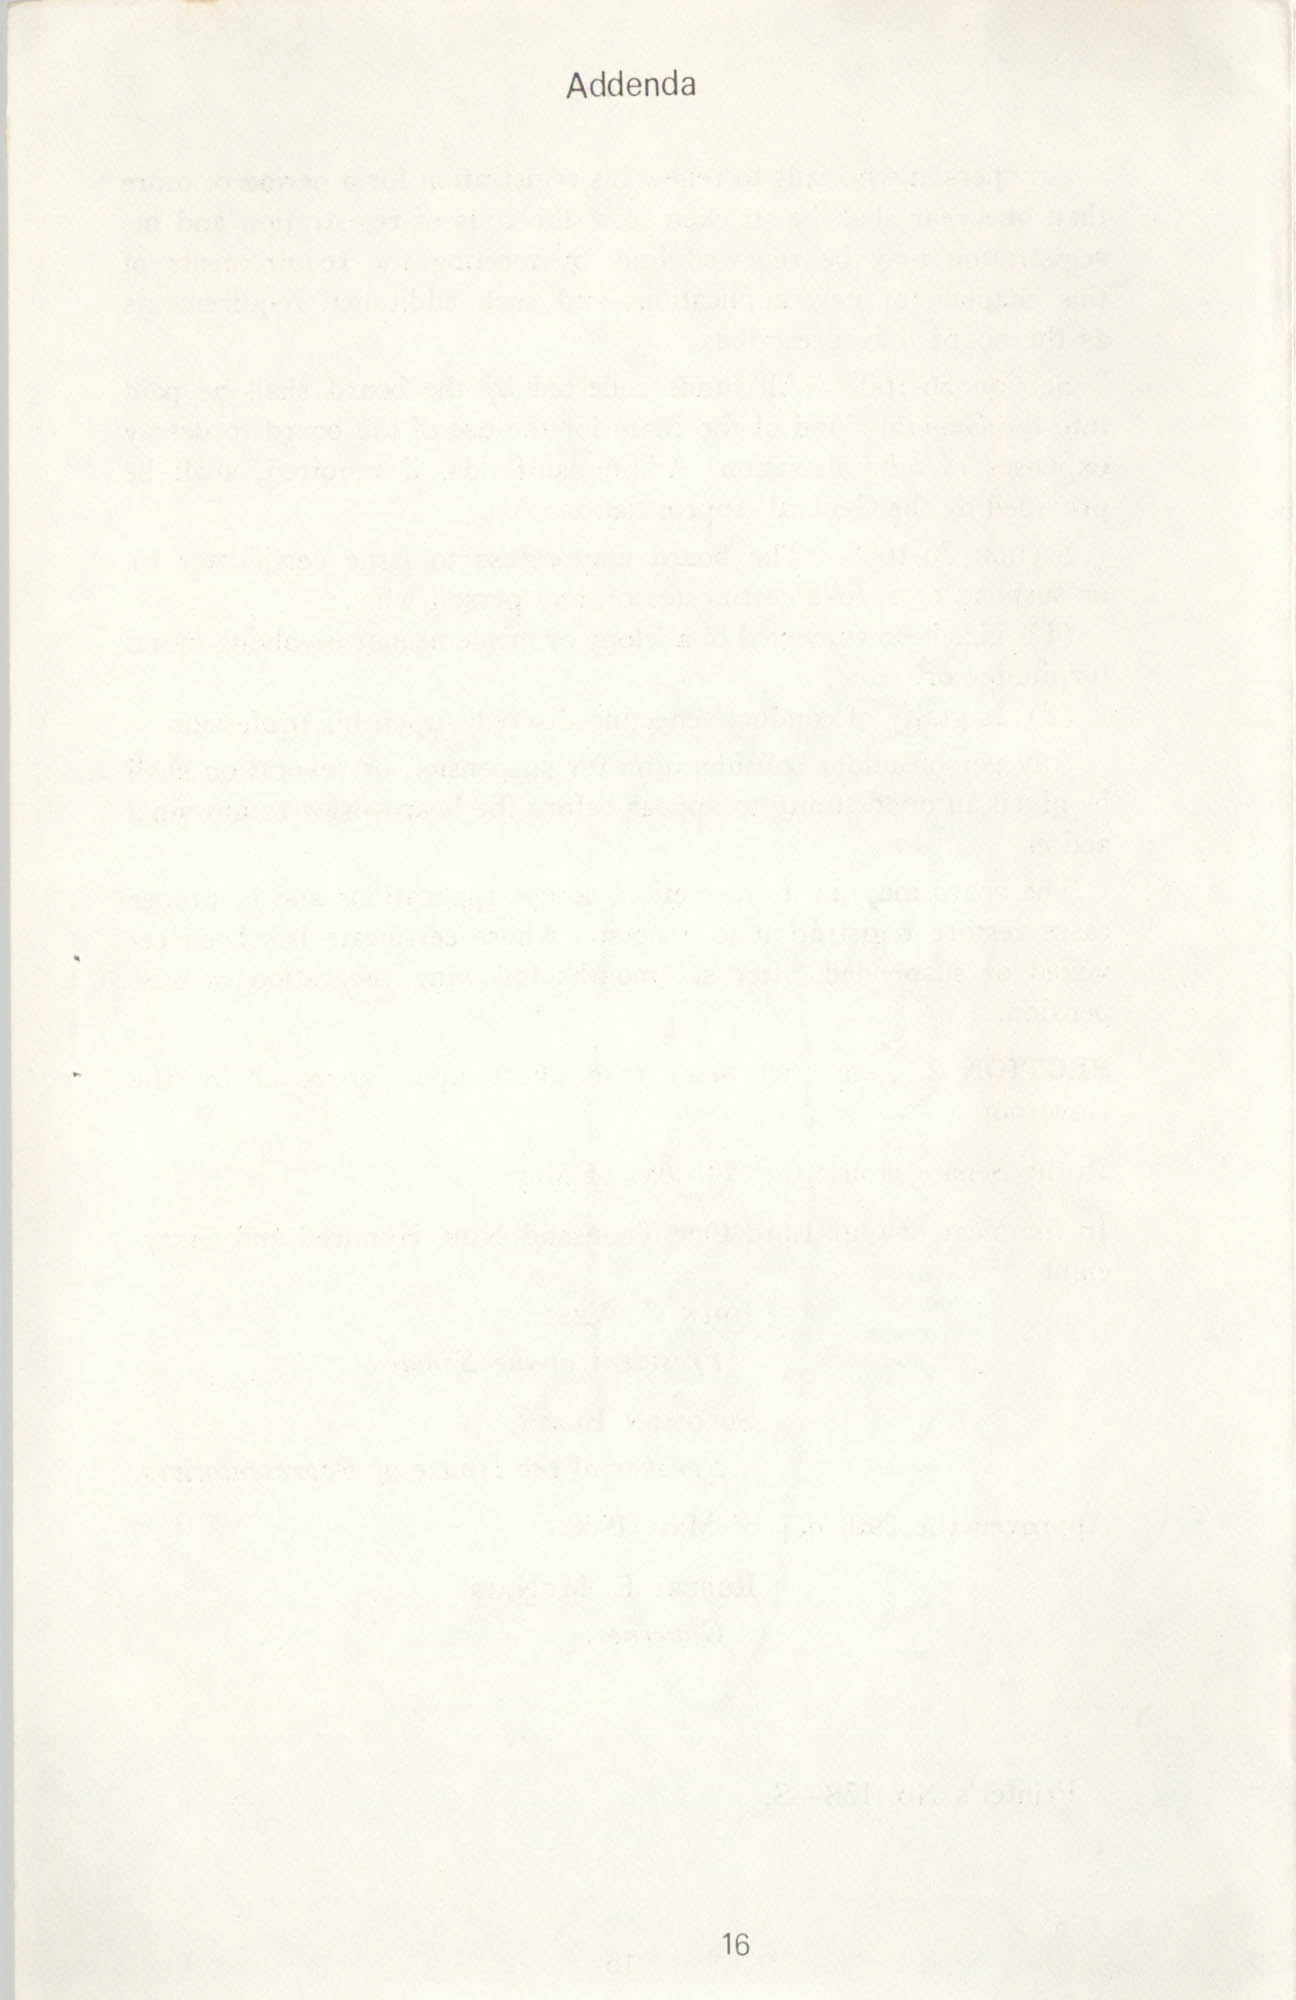 State of South Carolina Directory of Registered Social Workers, 1972, Page 16